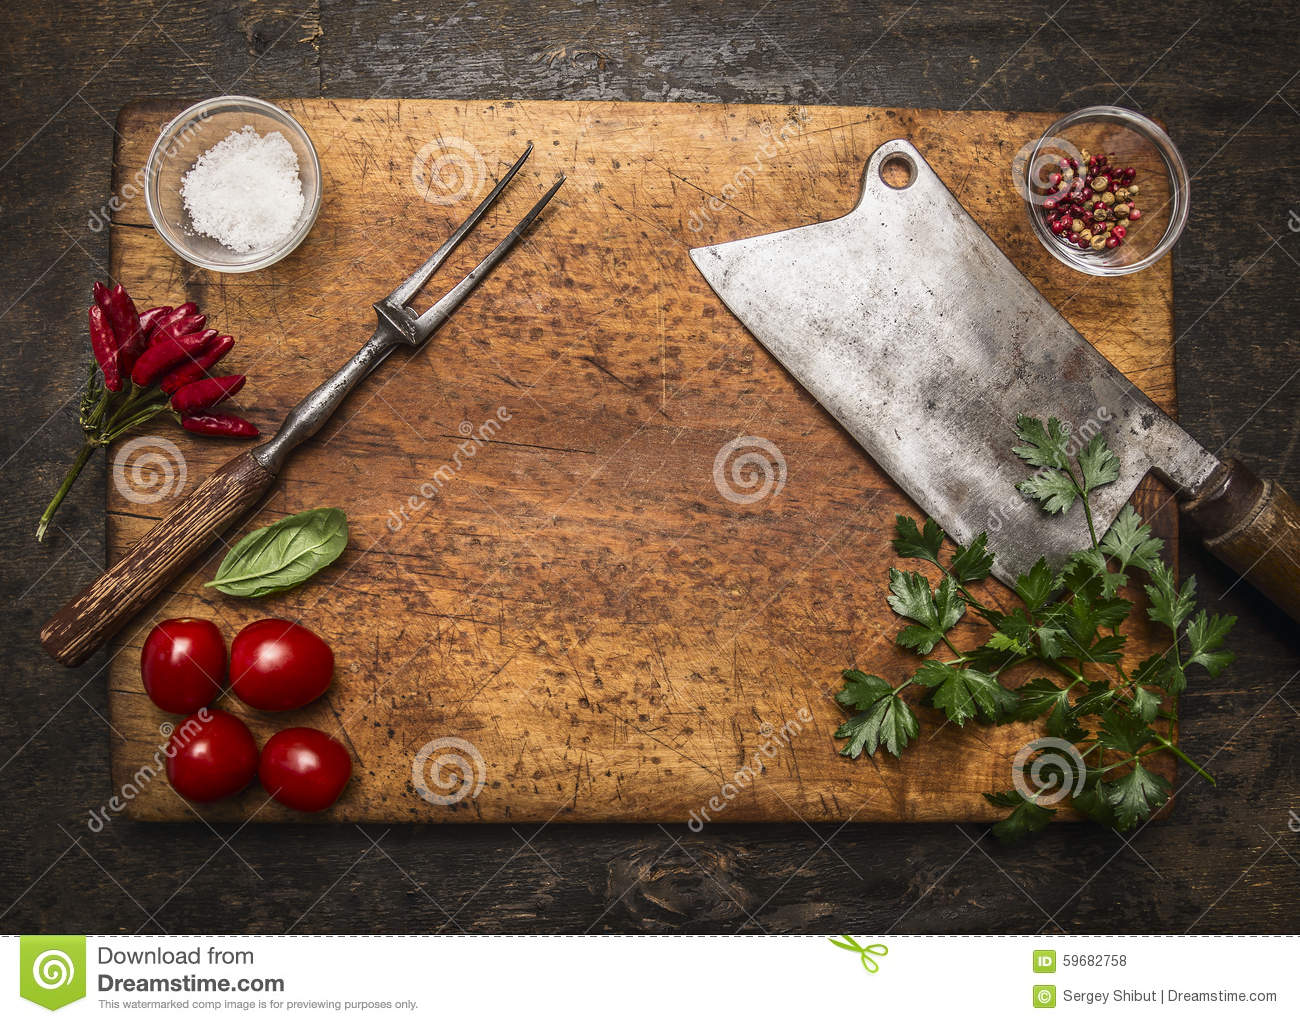 Wooden Cutting Board With Slasher Meat Fork Meat Pepper